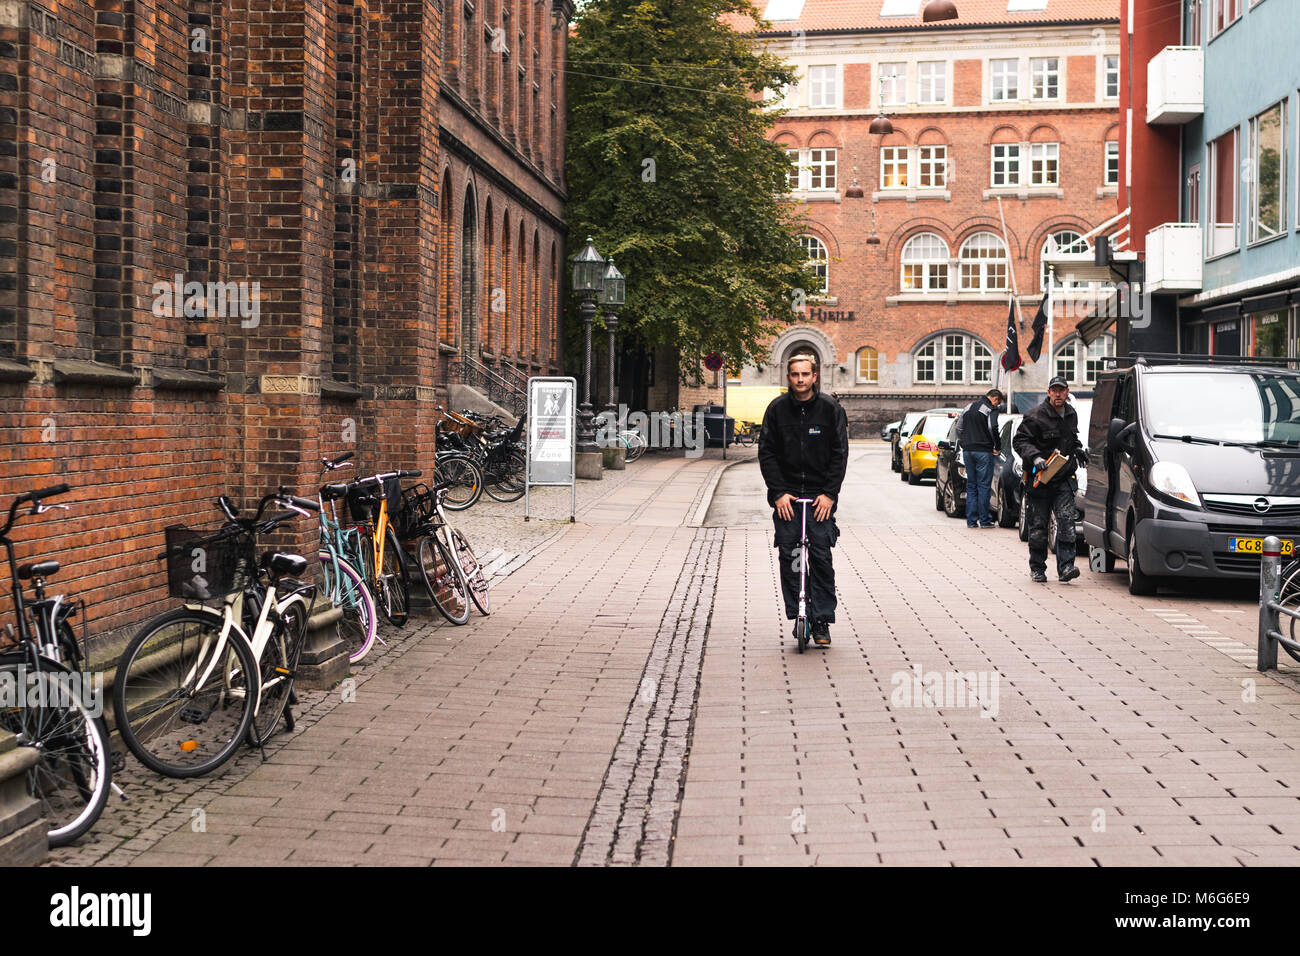 Copenhagen - October 17, 2016: A man with his tricycle on the Norregade street. Stock Photo